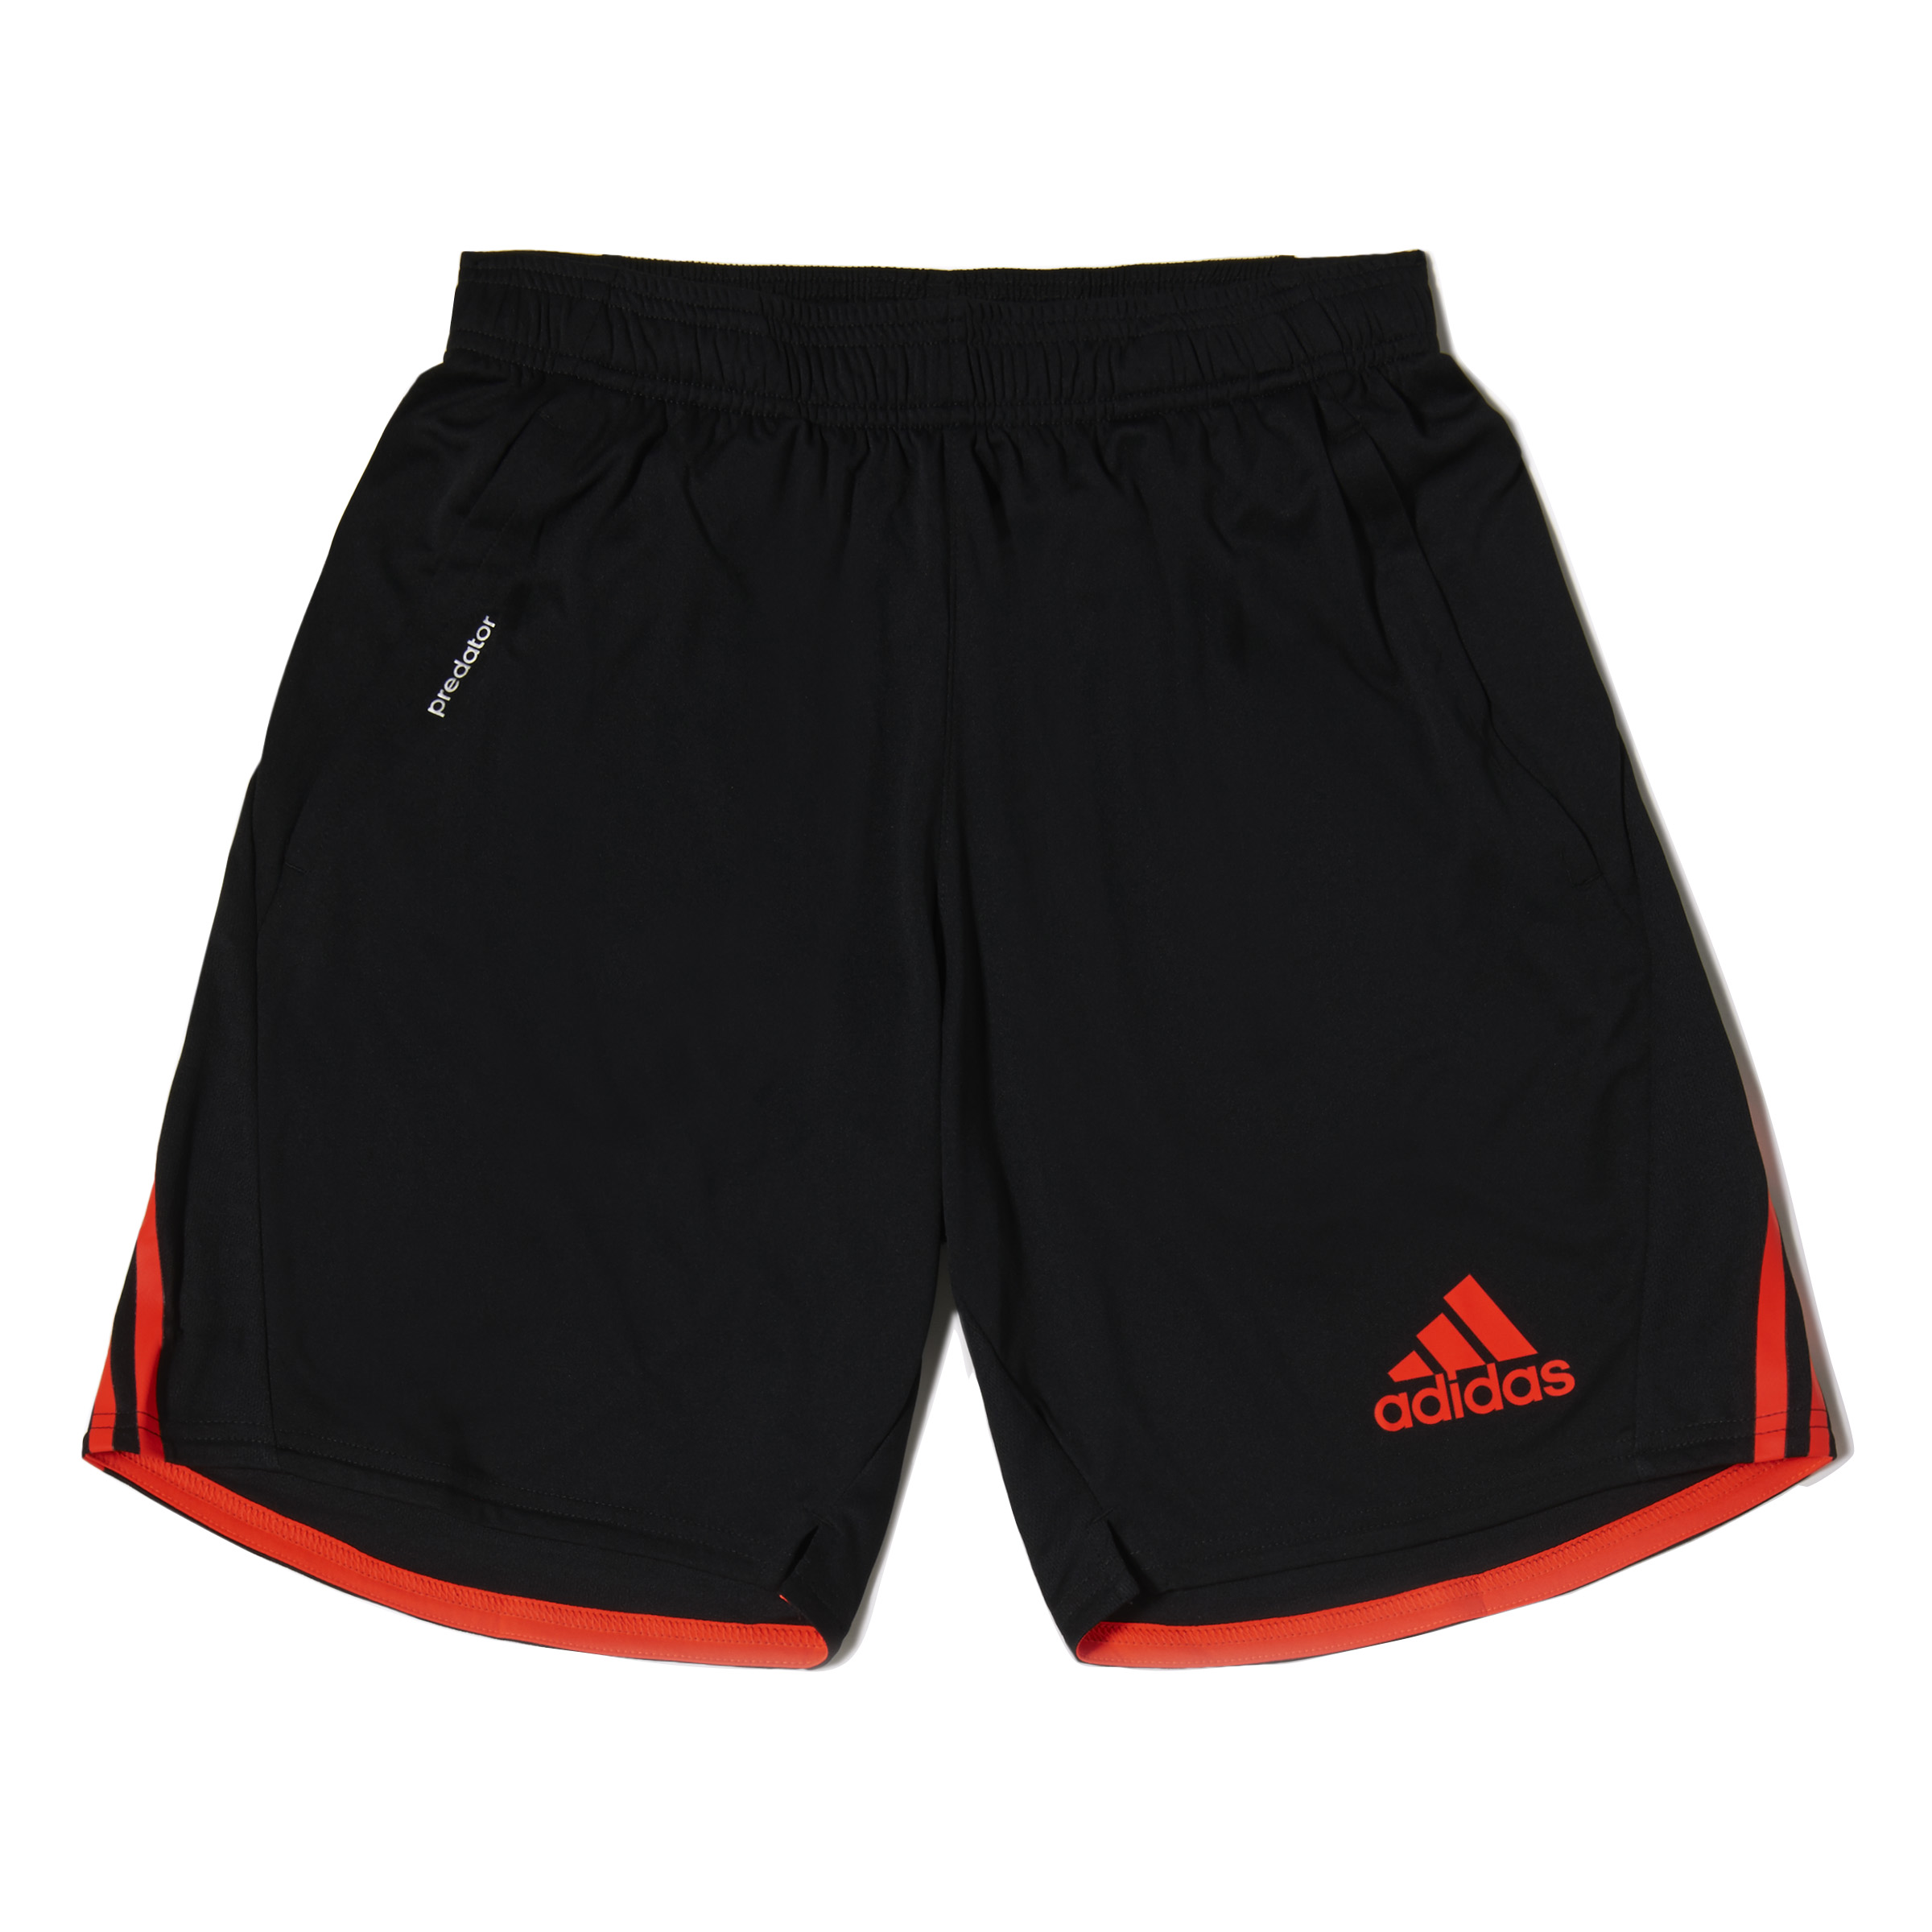 Adidas Predator Training Short Black